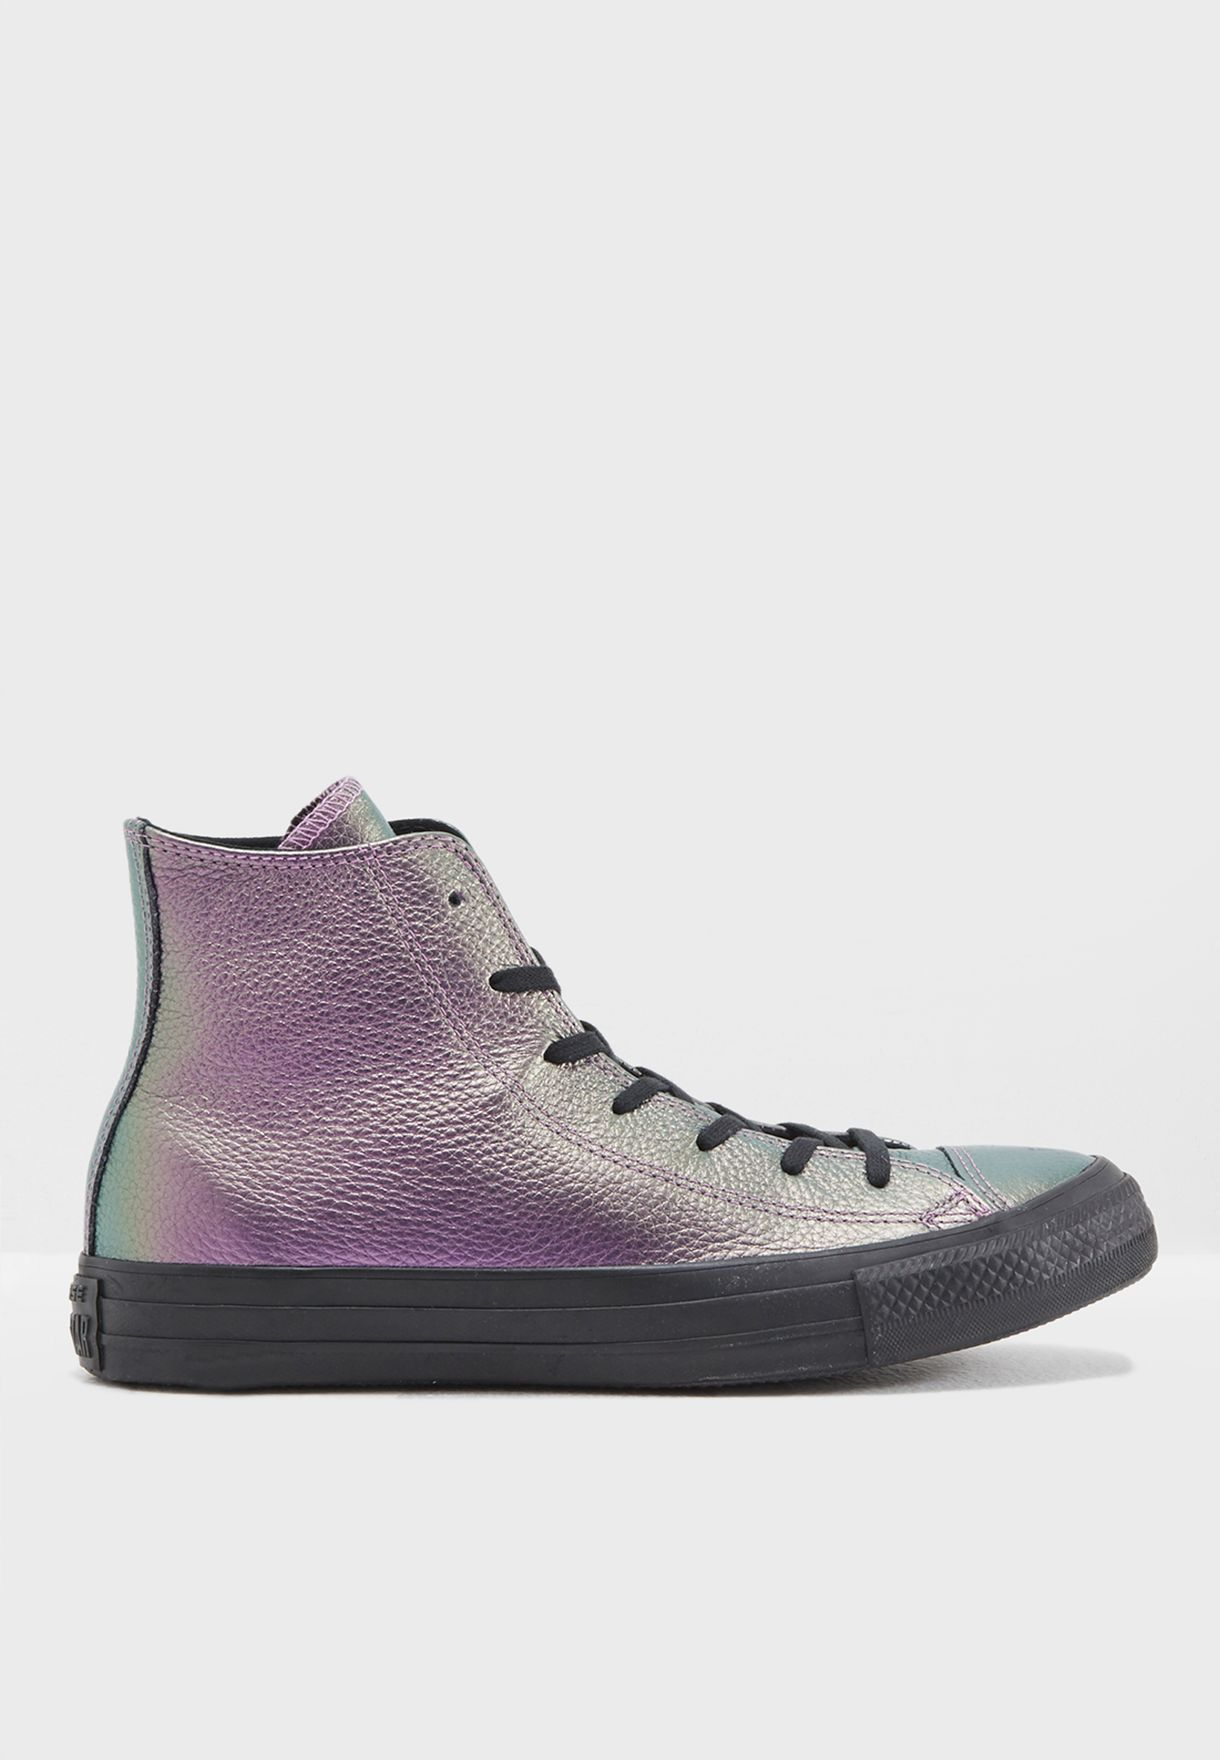 69d5bba9f2ff Shop Converse purple Chuck Taylor All Star Iridescent Leather ...